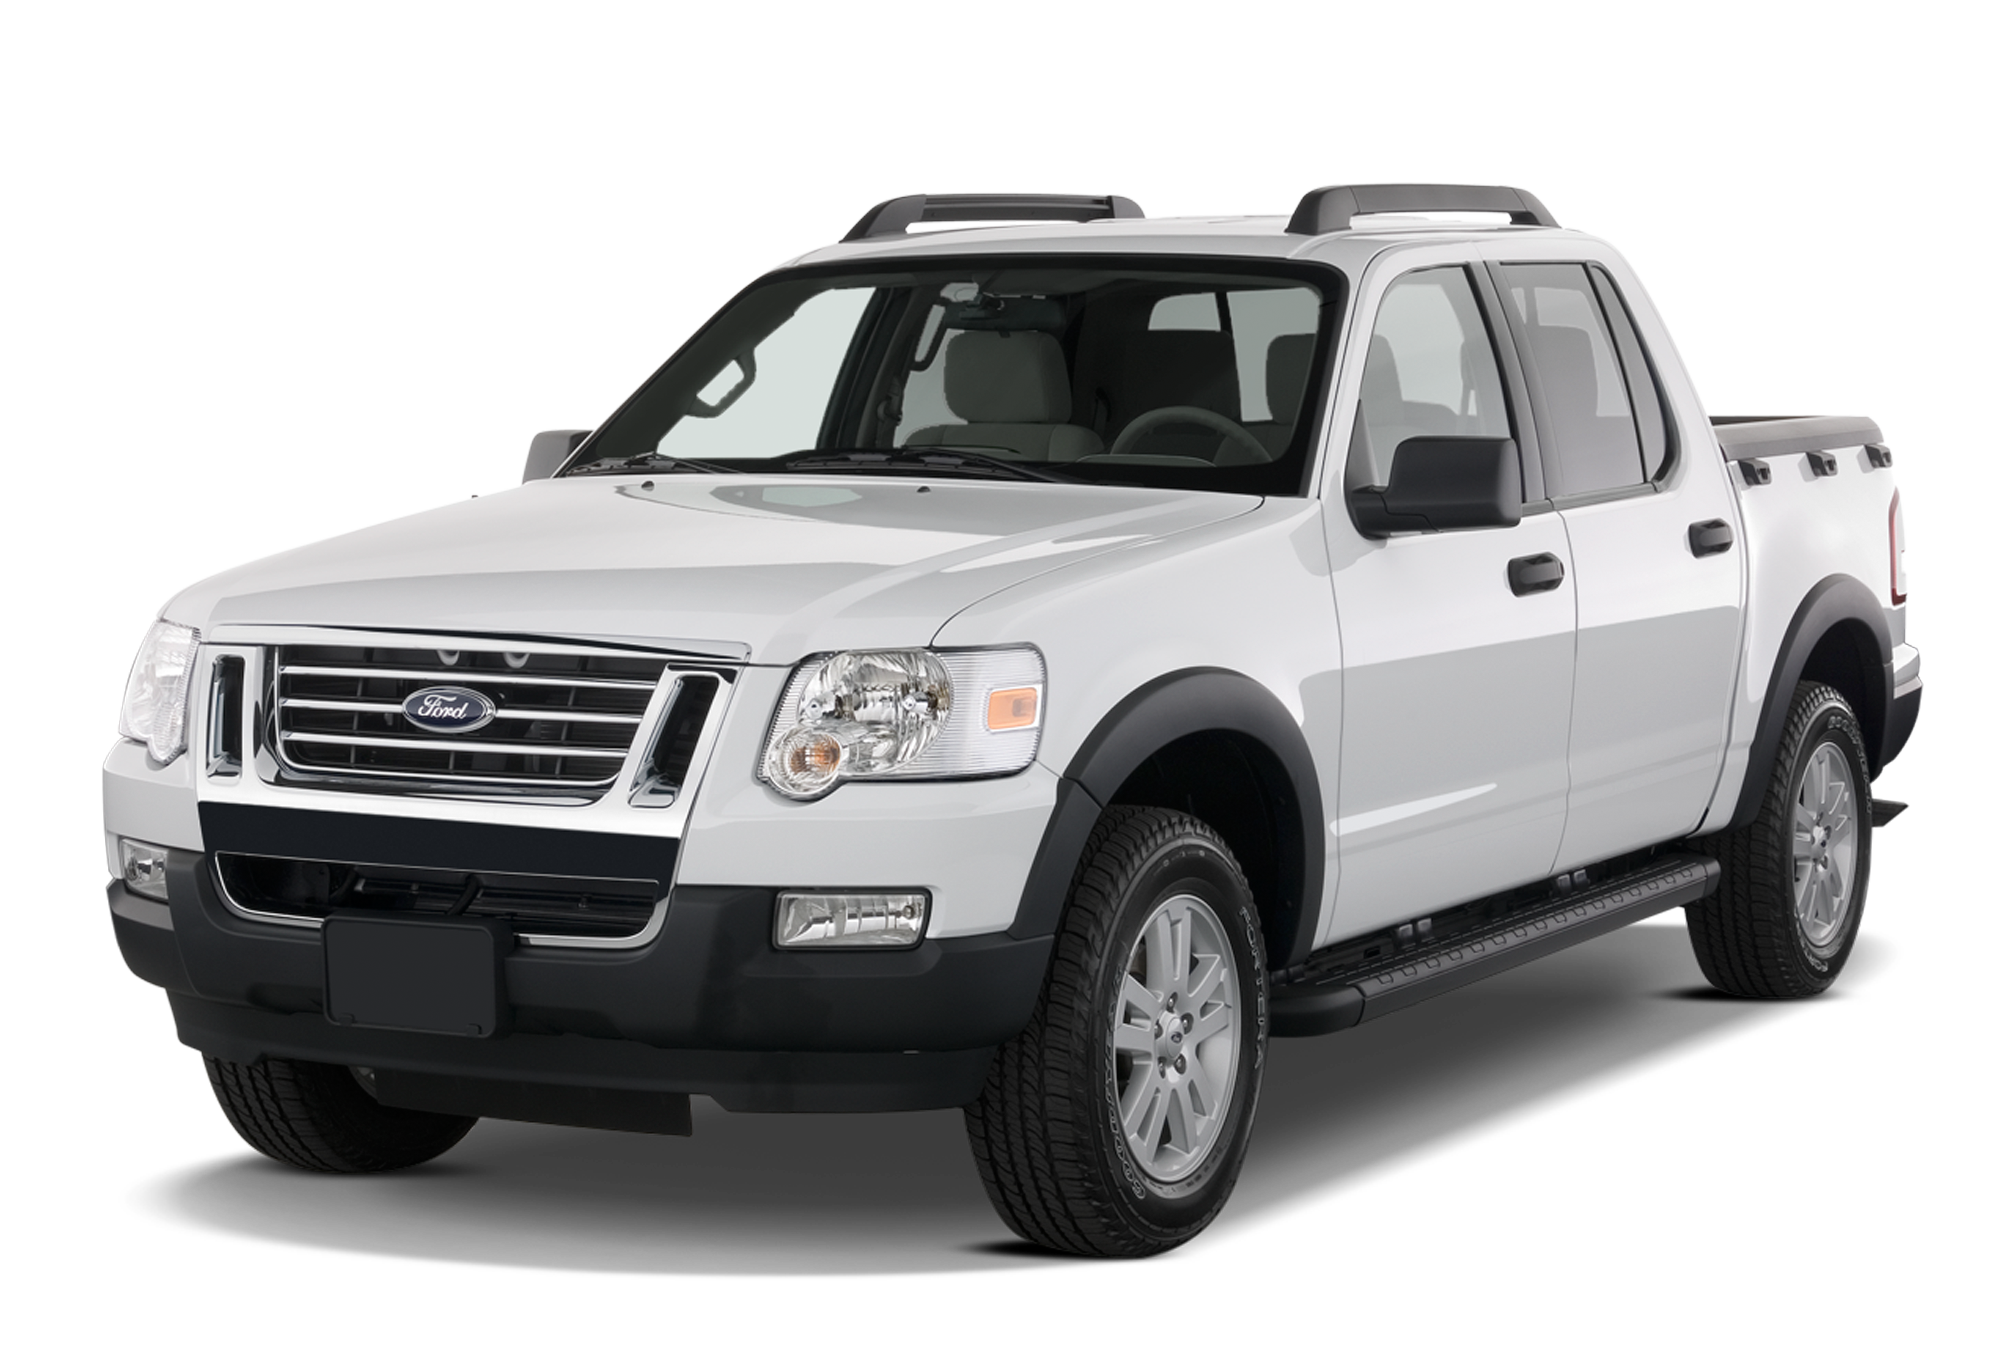 2010 ford explorer sport trac reviews and rating | motortrend